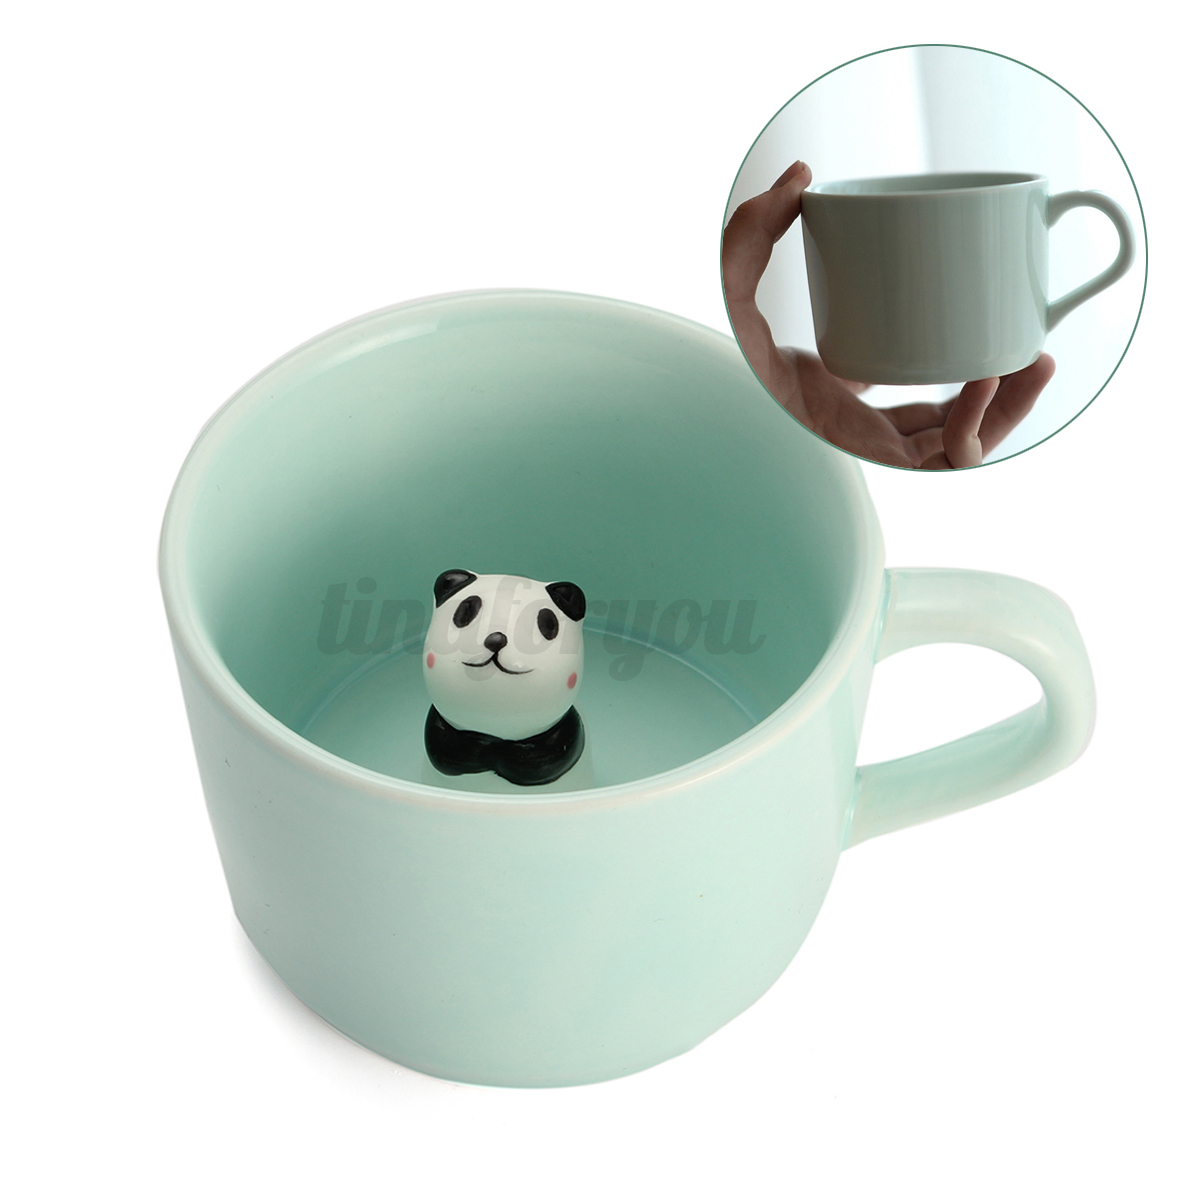 Animal Coffee Mug 3d Cute Sculpted Animal Milk Cup Mug Ceramic Heat